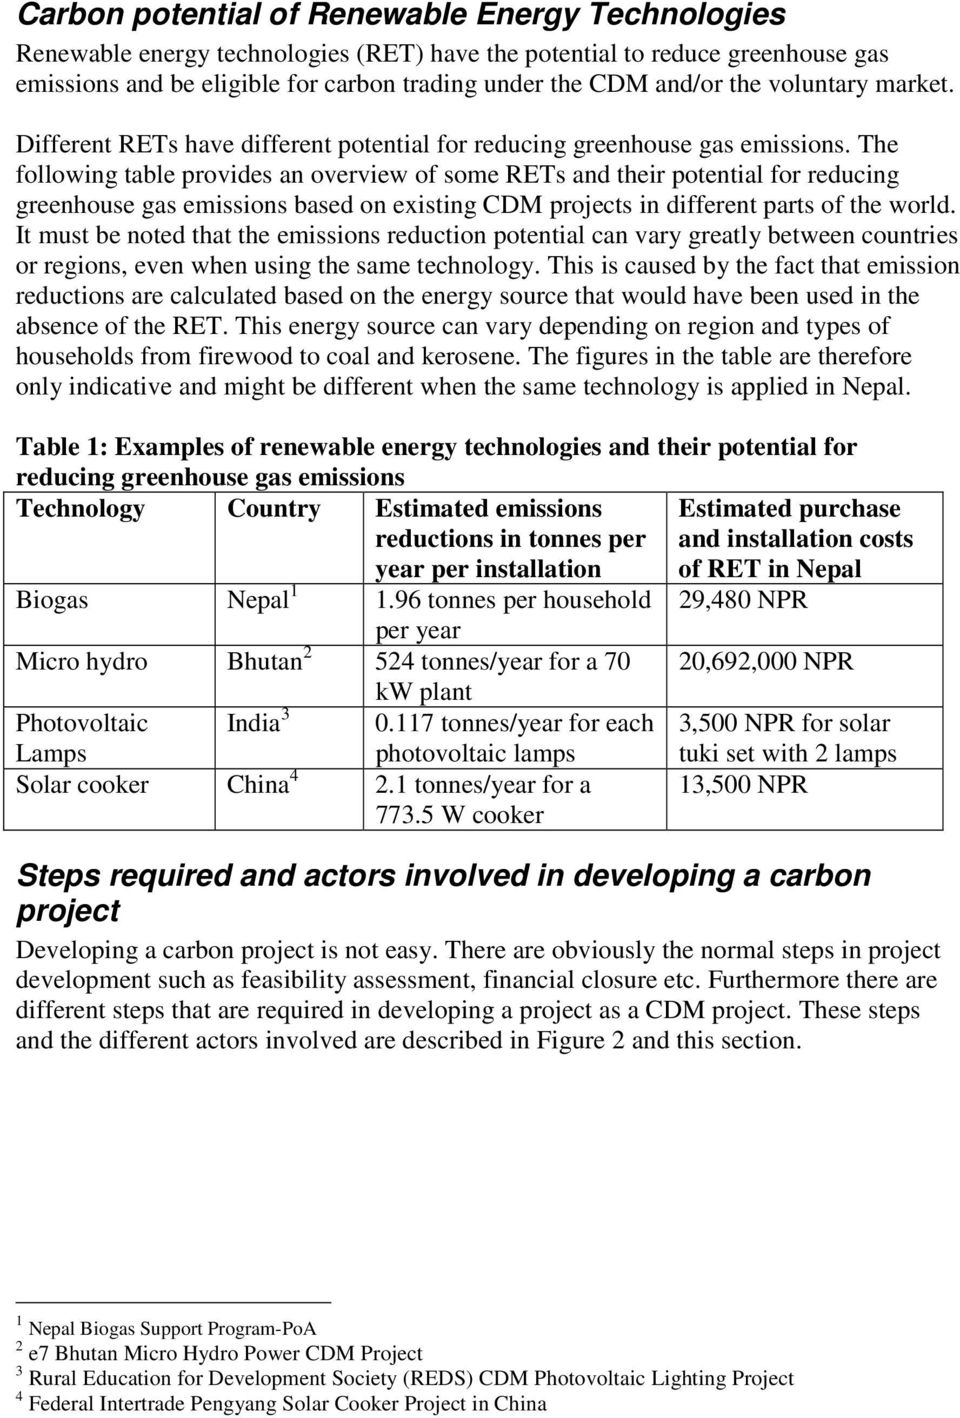 The following table provides an overview of some RETs and their potential for reducing greenhouse gas emissions based on existing CDM projects in different parts of the world.